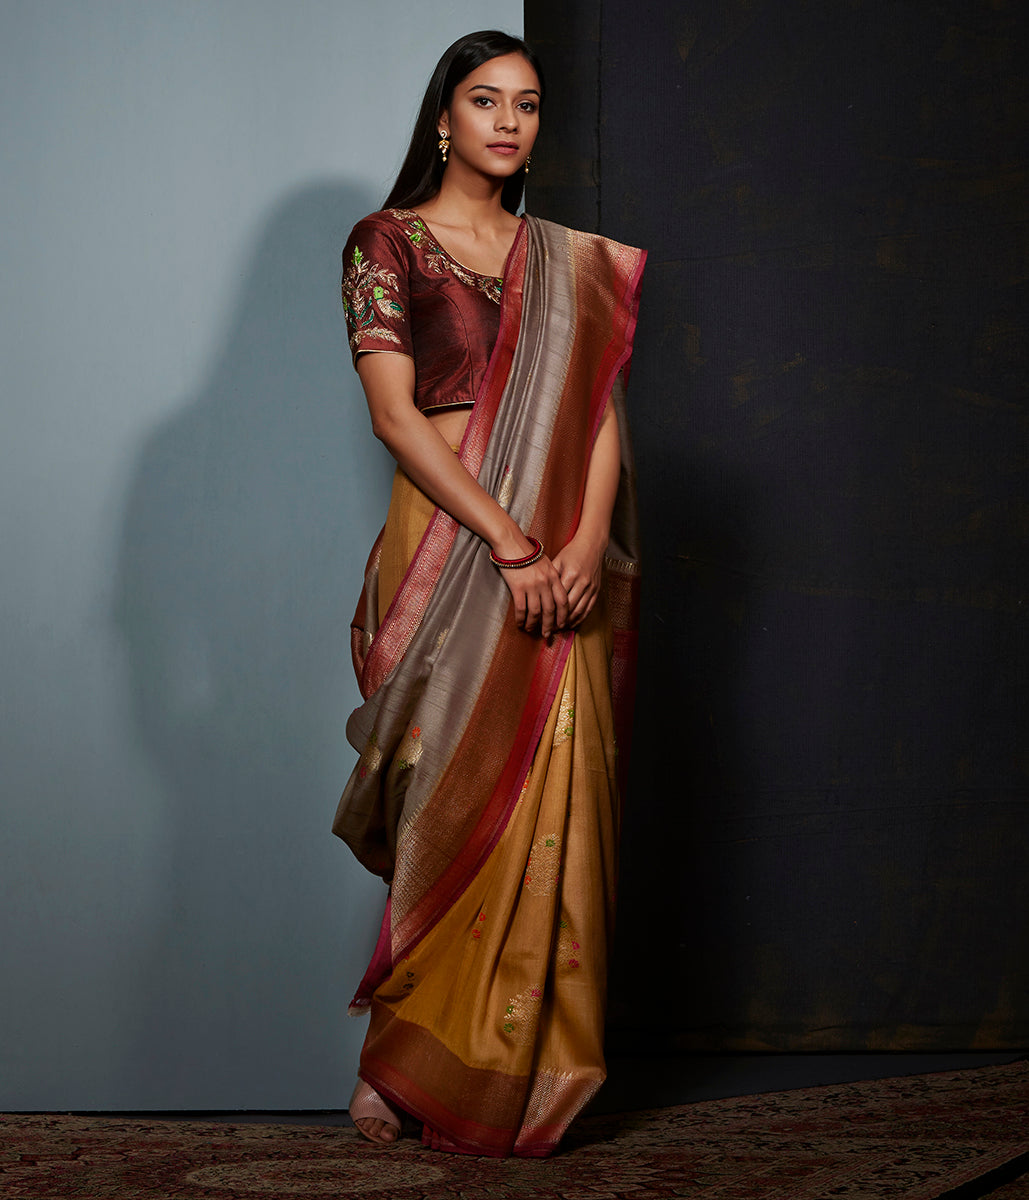 Mustard olive and wine ombre dyed meenakari boota saree in tusser georgette